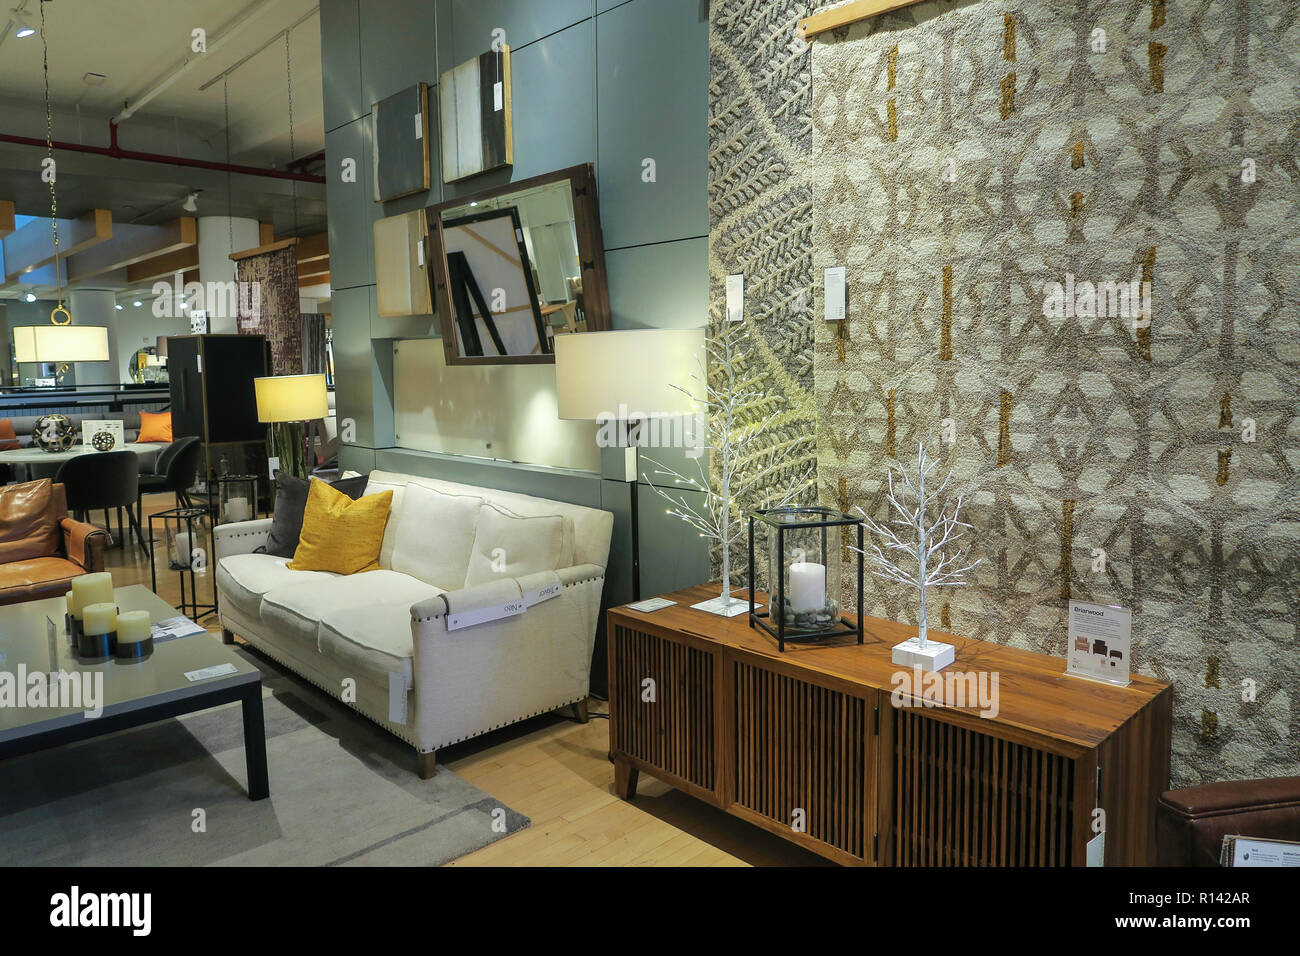 Cb2 Furniture Store Interior Nyc Usa Stock Photo 224439119 Alamy